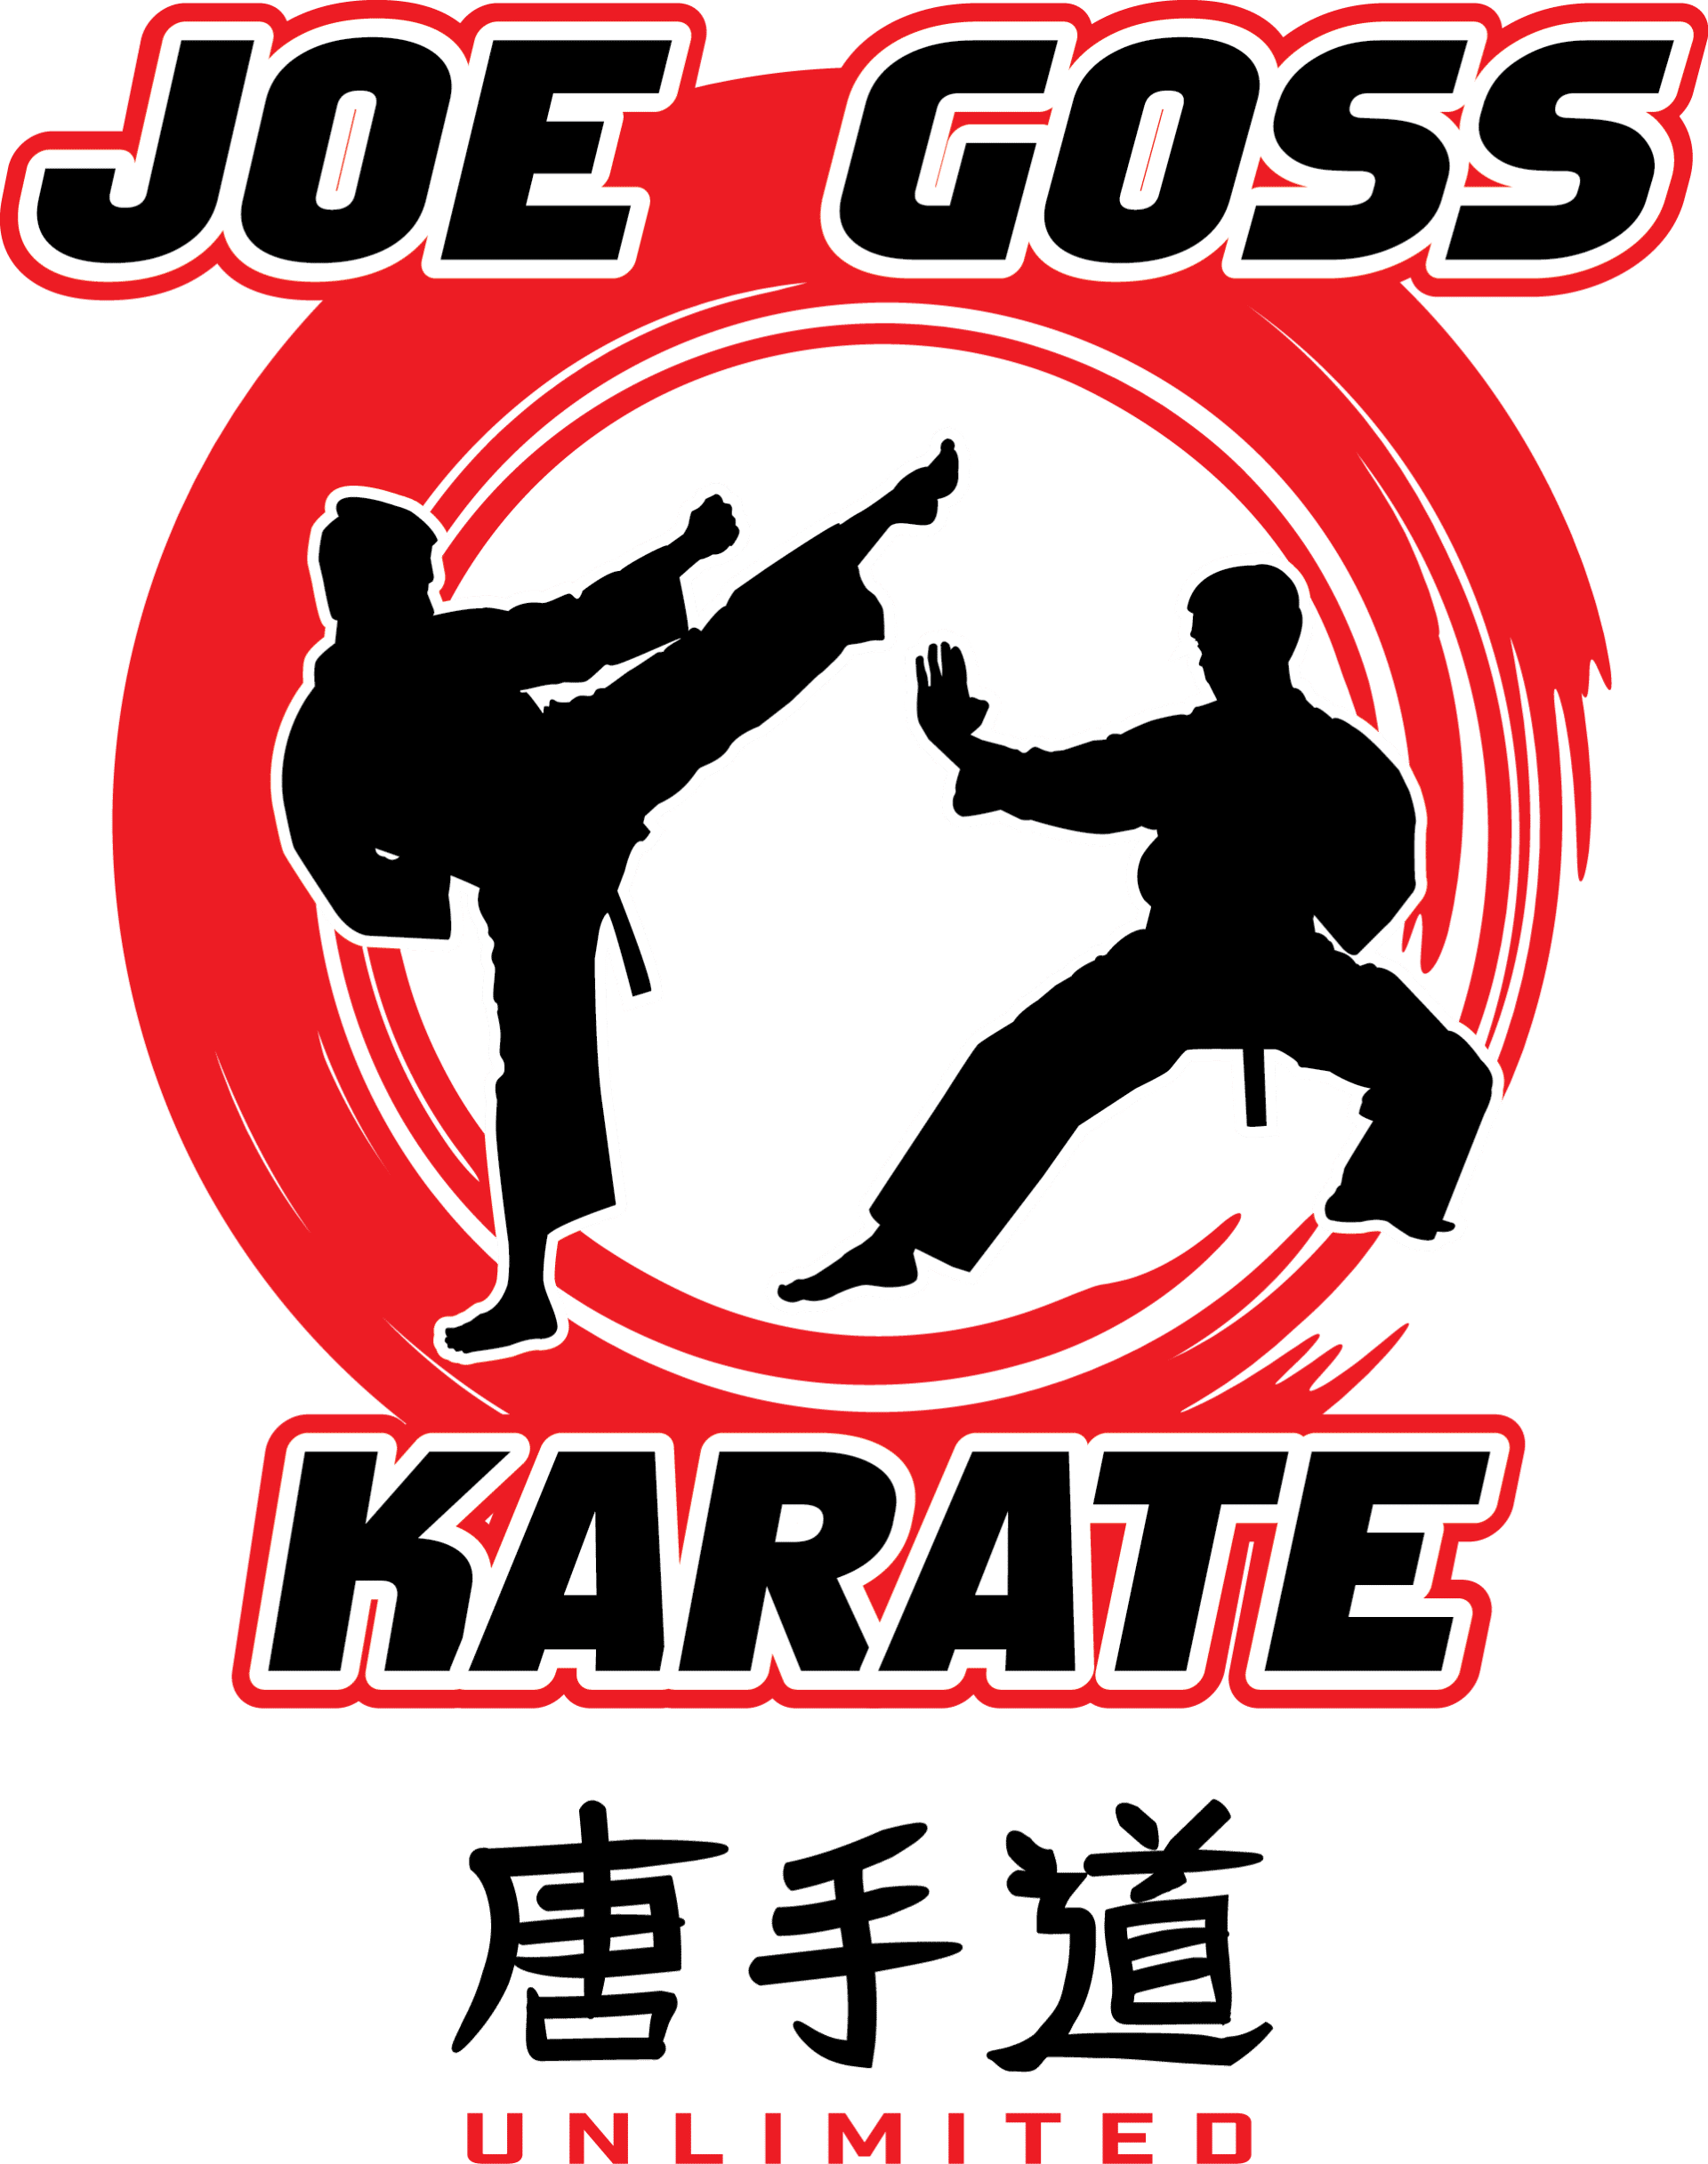 Joe Goss Karate_whiteT